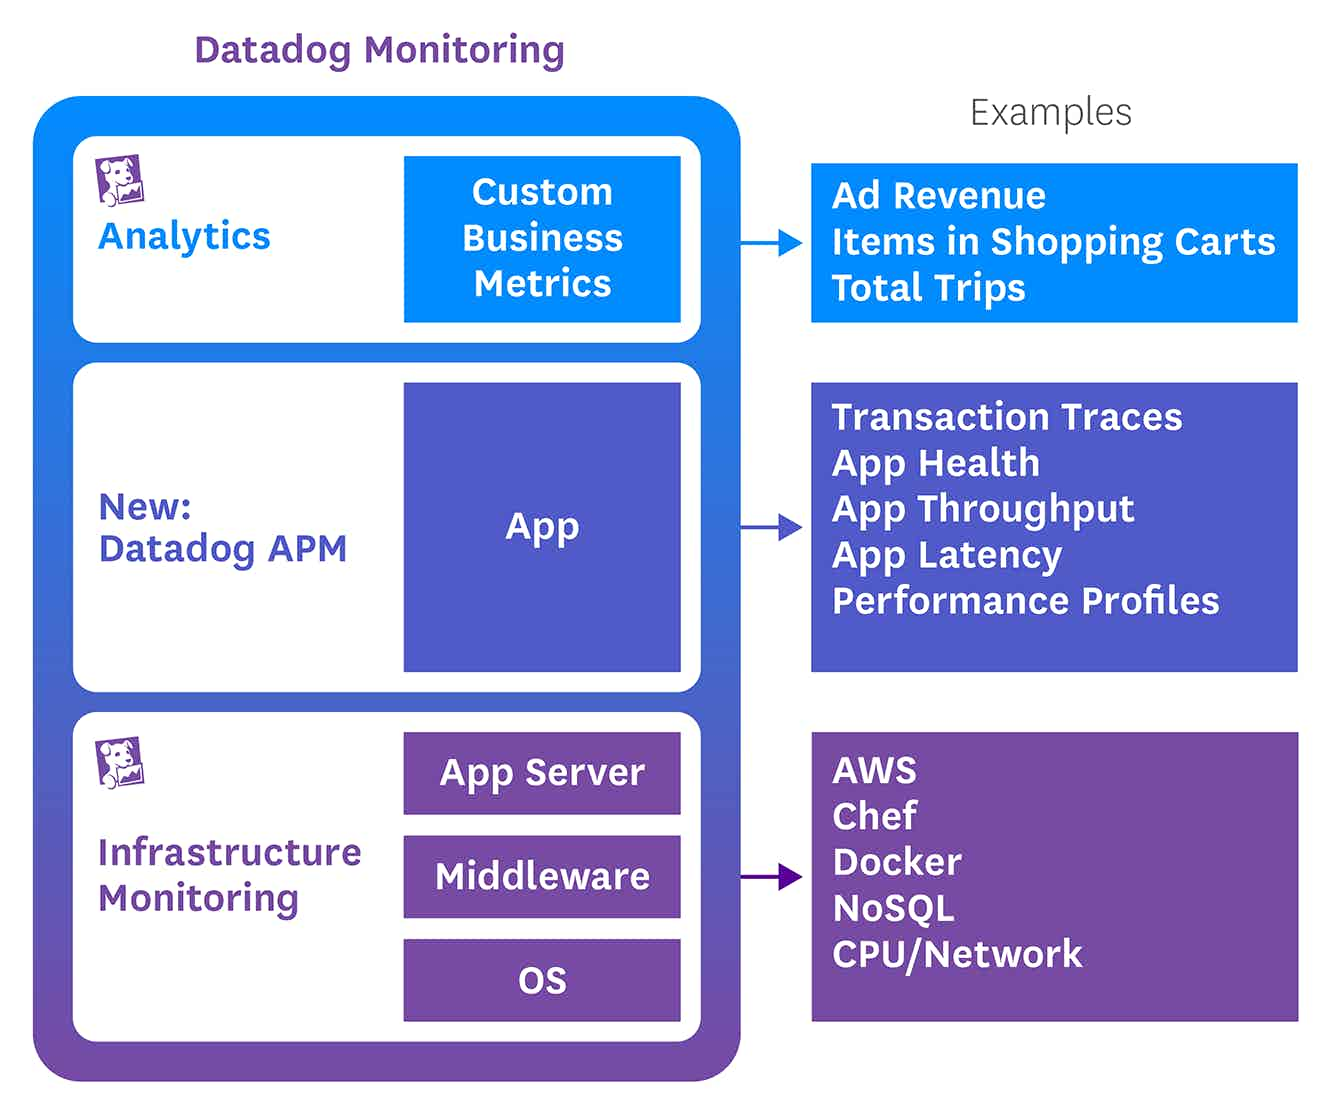 A full stack monitored by Datadog, including infrastructure, application, and analytics